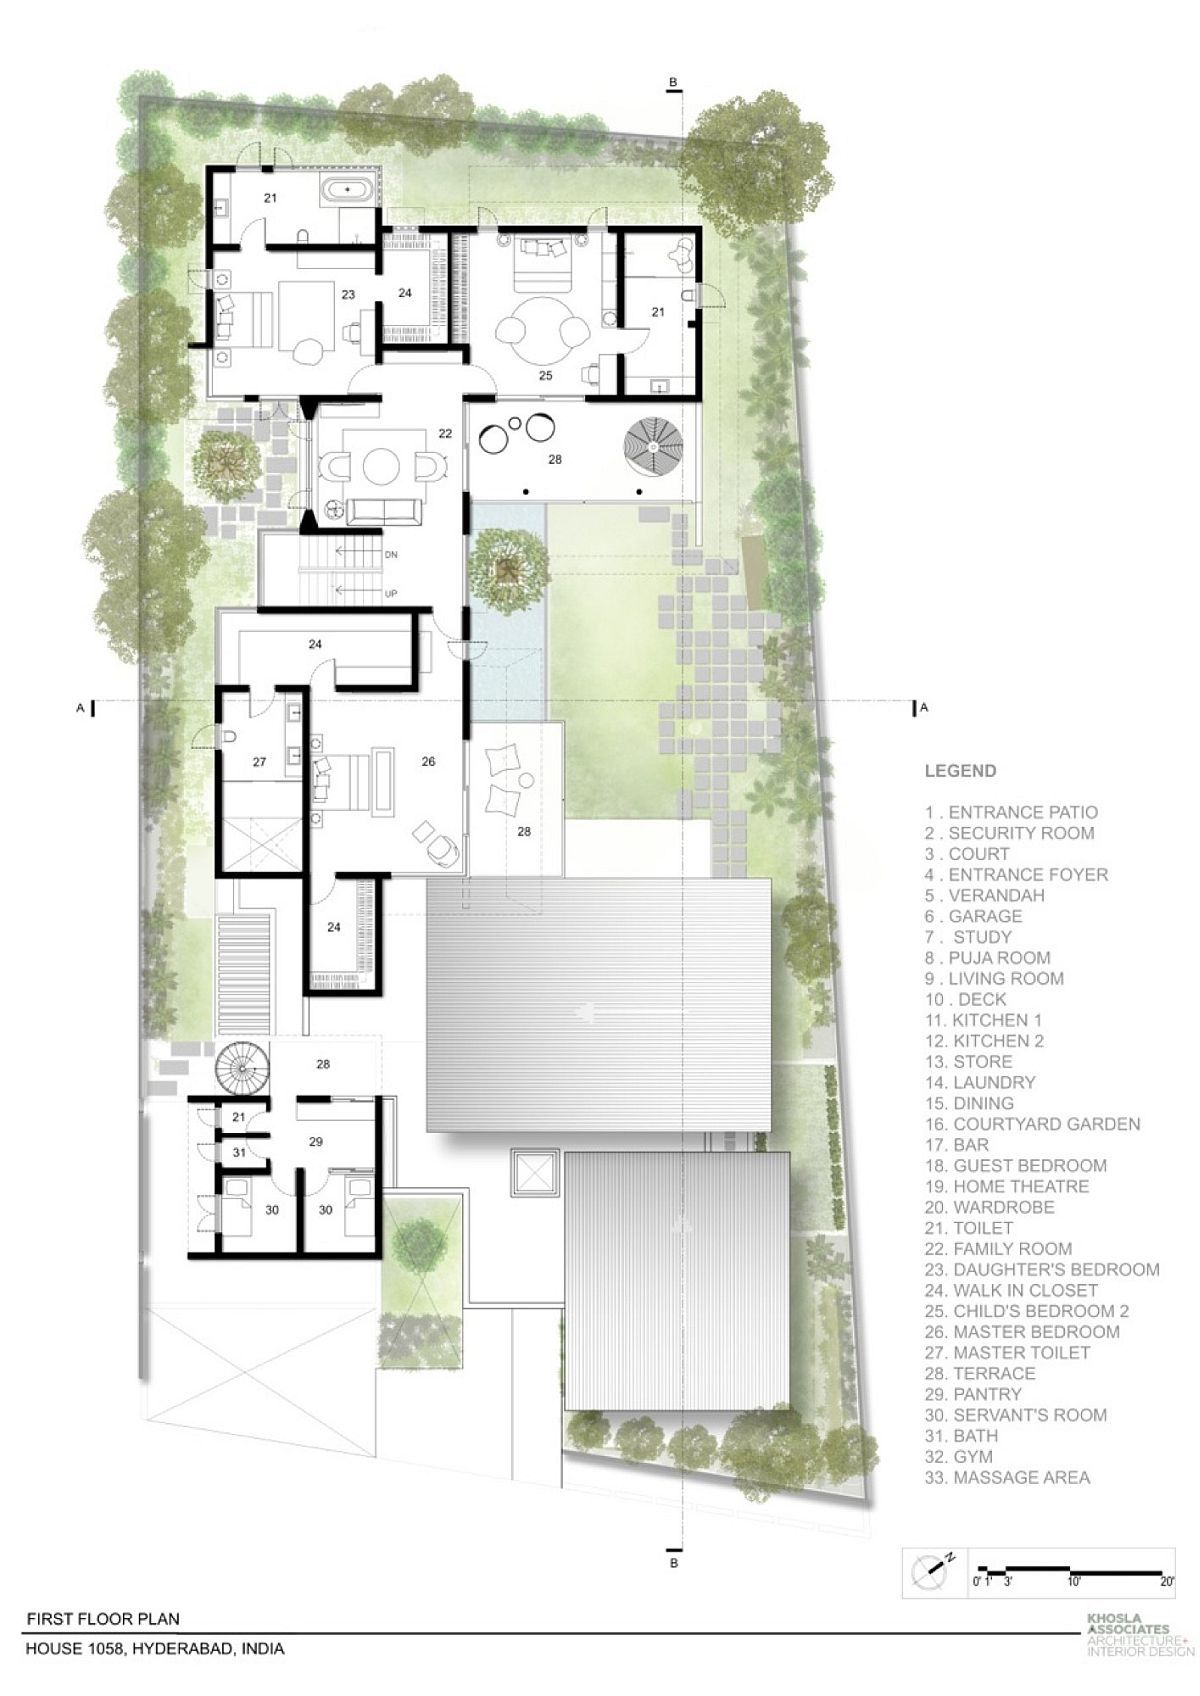 House 1058 Series Of Cantilevered Roofs And Gardens Offers Sheltered Hangouts Architectural Floor Plans Hotel Floor Plan Architectural House Plans